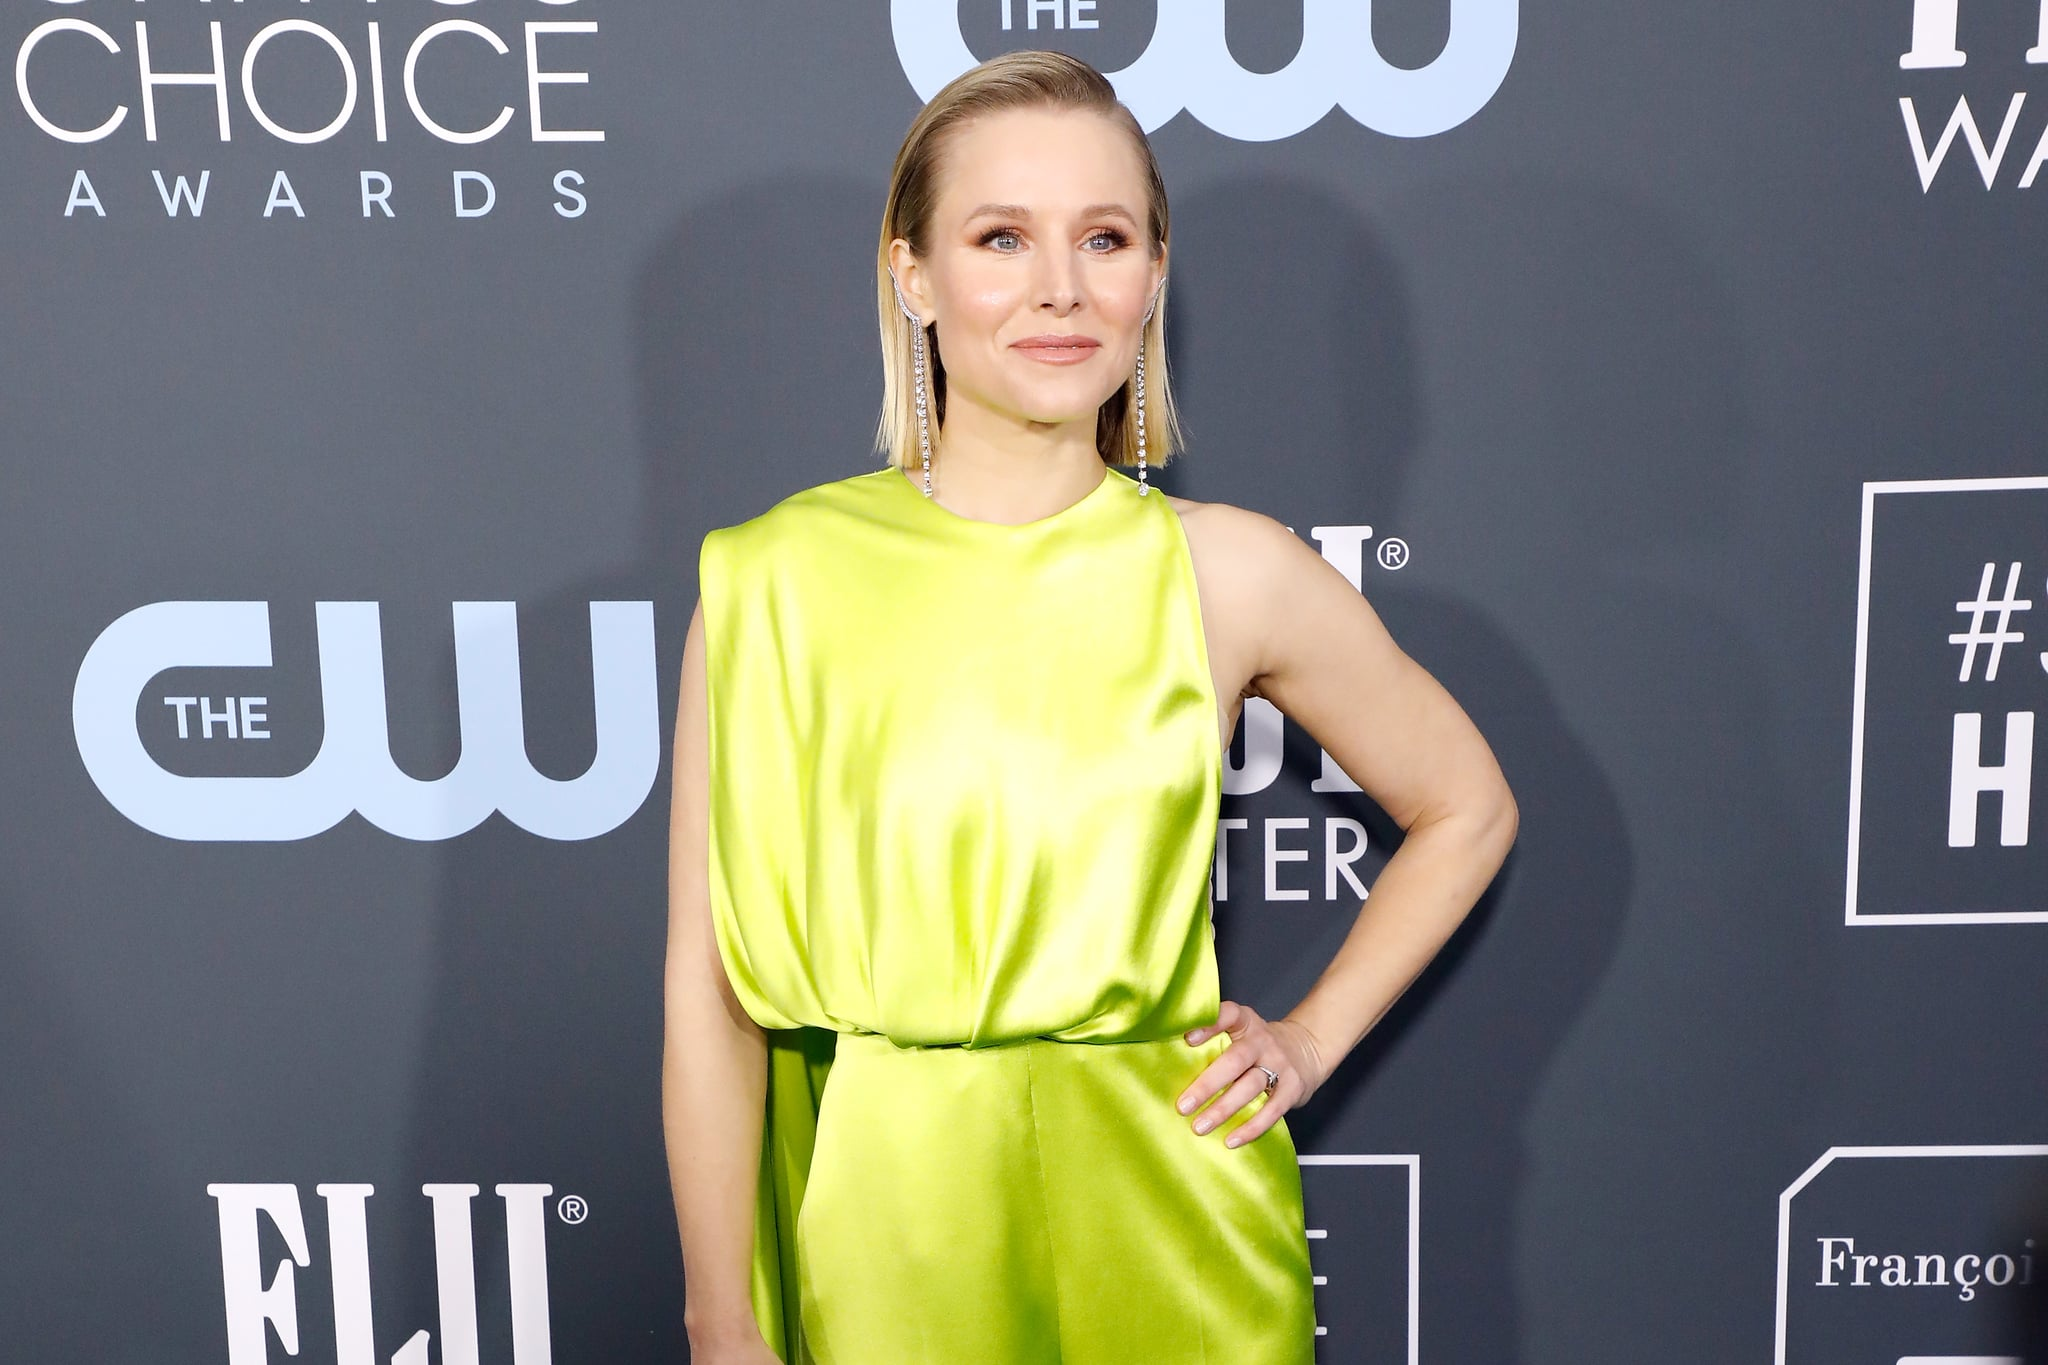 SANTA MONICA, CALIFORNIA - JANUARY 12: Kristen Bell attends the 25th Annual Critics' Choice Awards at Barker Hangar on January 12, 2020 in Santa Monica, California. (Photo by Taylor Hill/Getty Images)